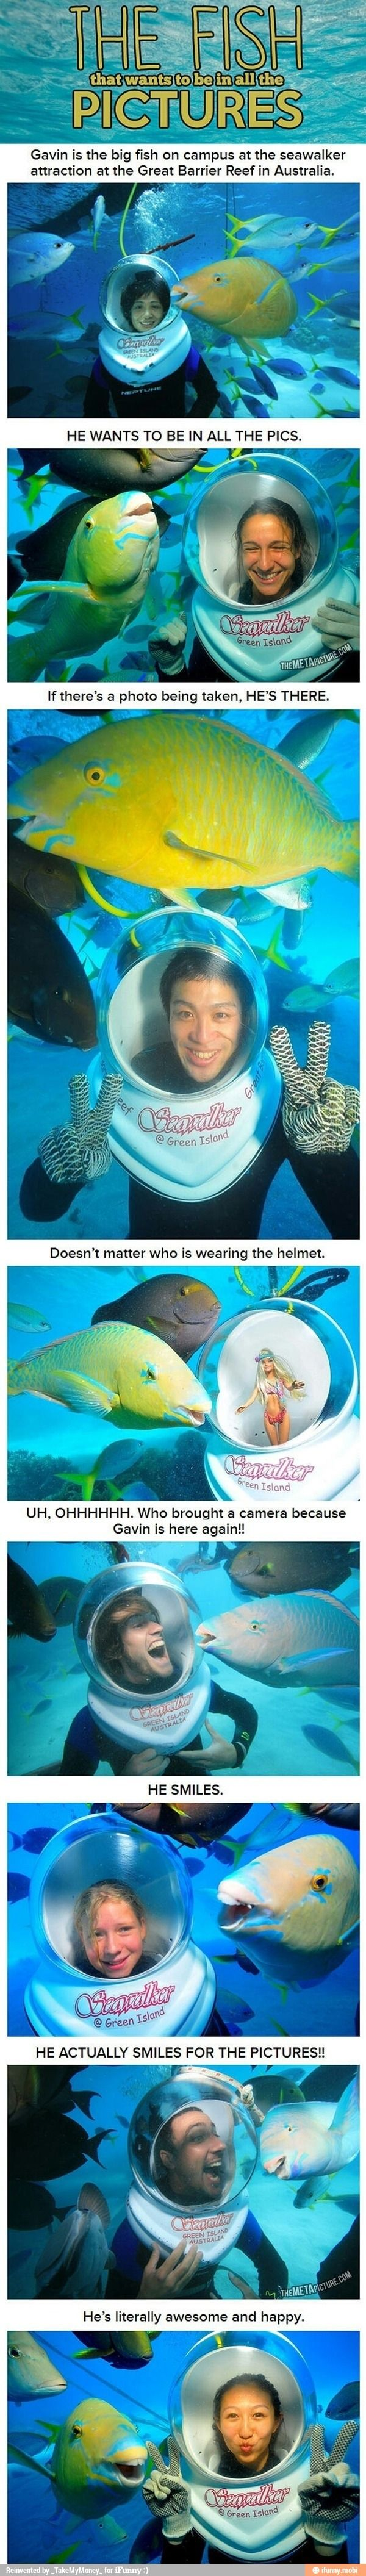 This fish knows his picture is being taken!